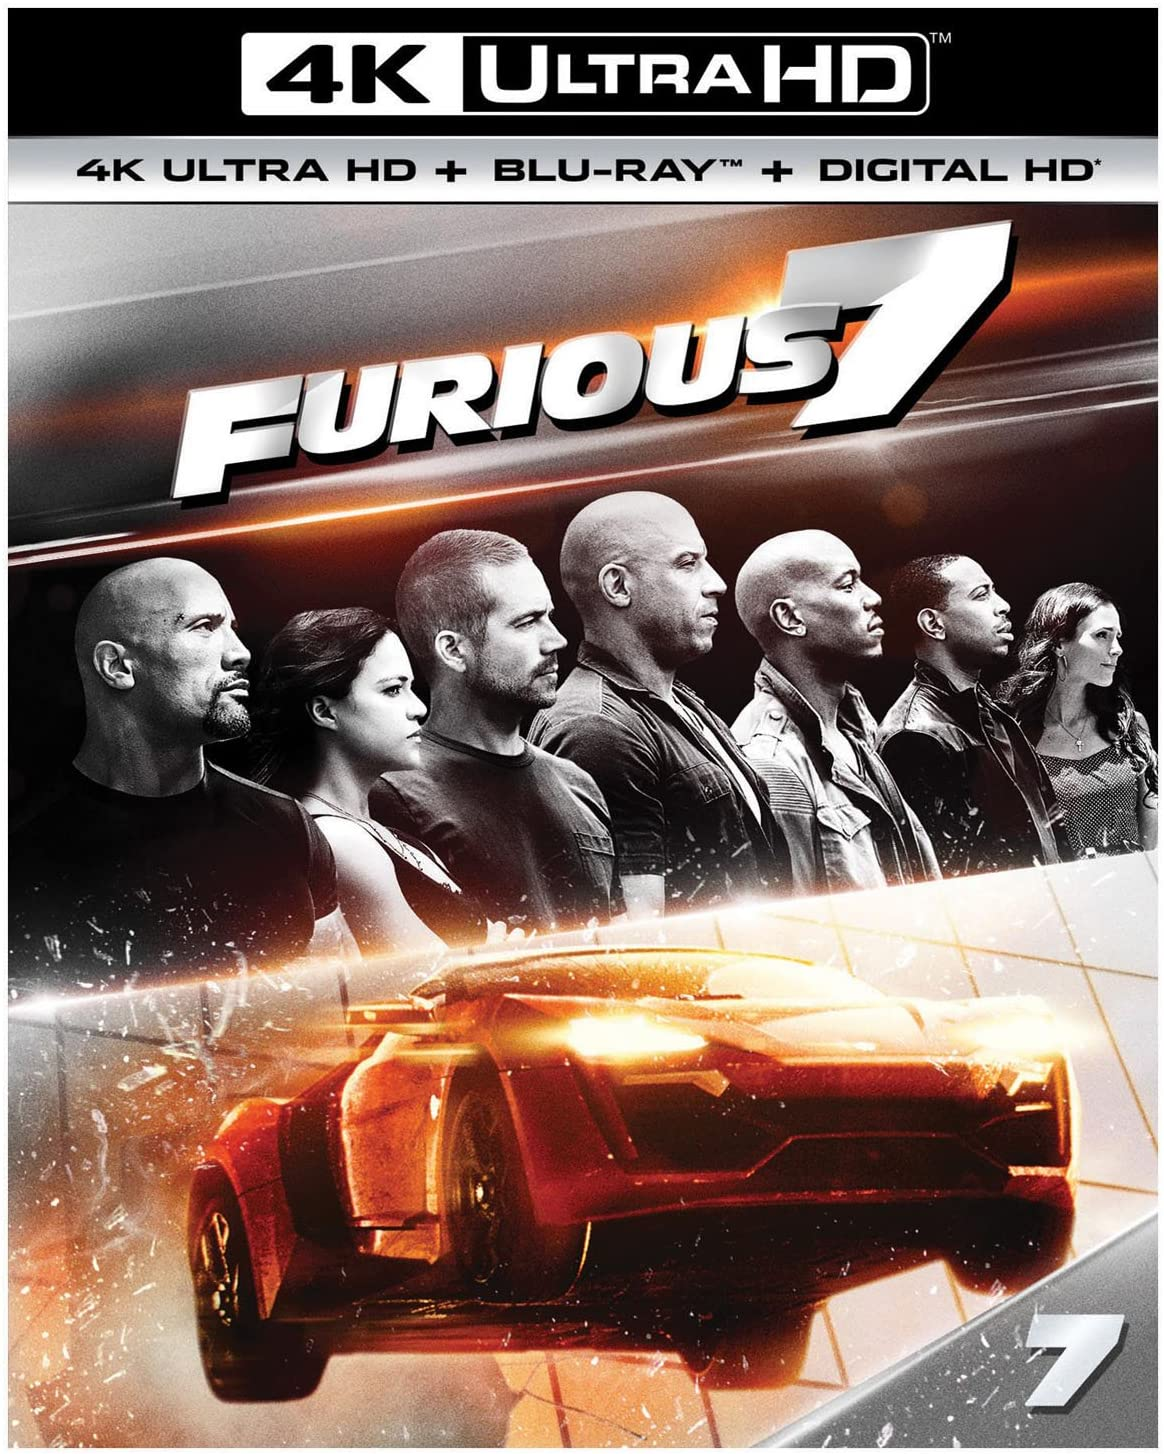 Furious 7 Extended Edition iTunes 4K redemption only